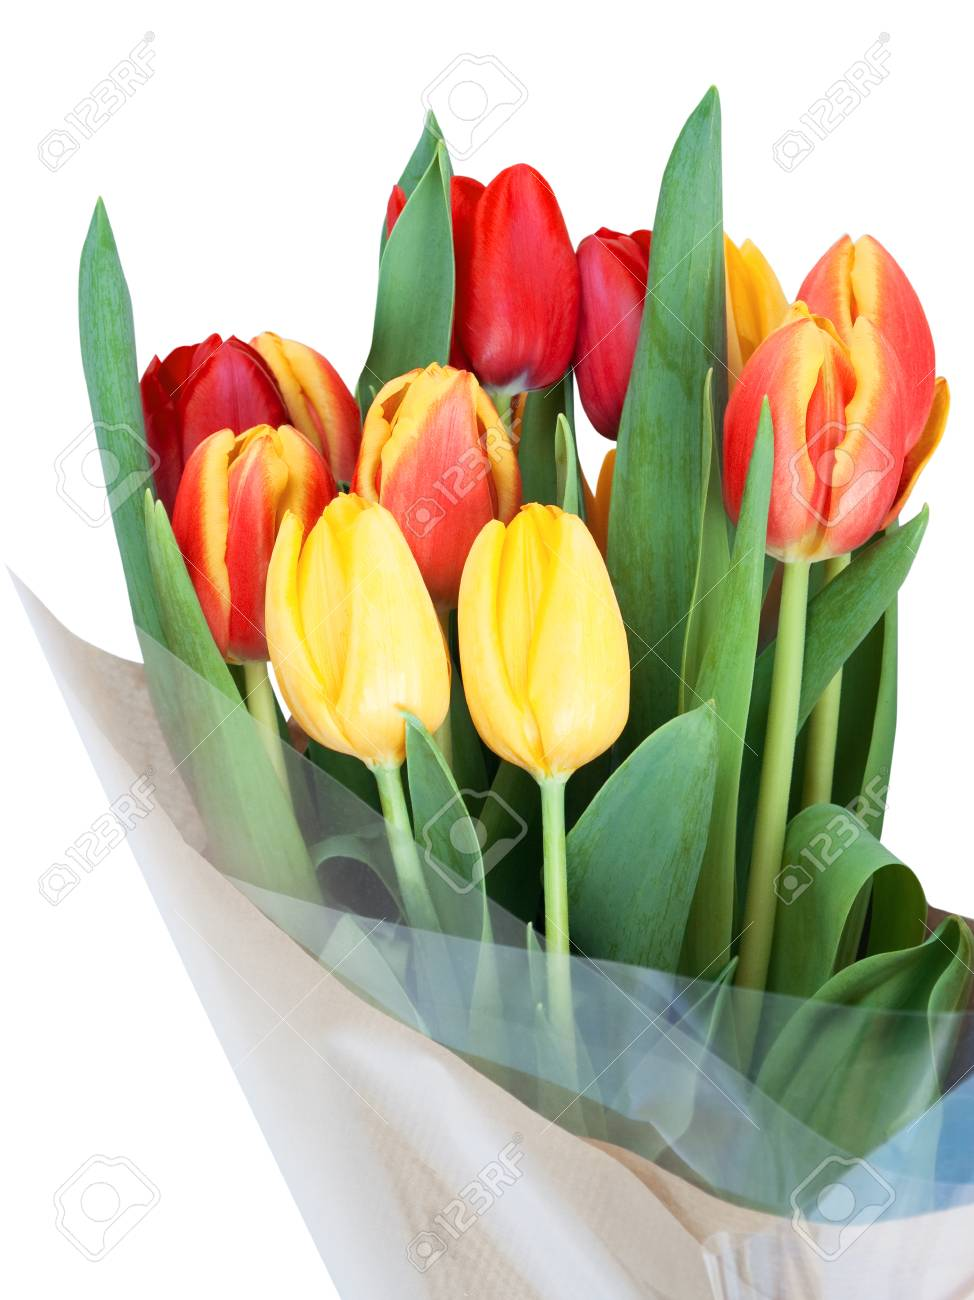 Bouquet Of Red And Yellow Tulips With Green Leaves Wrapped In